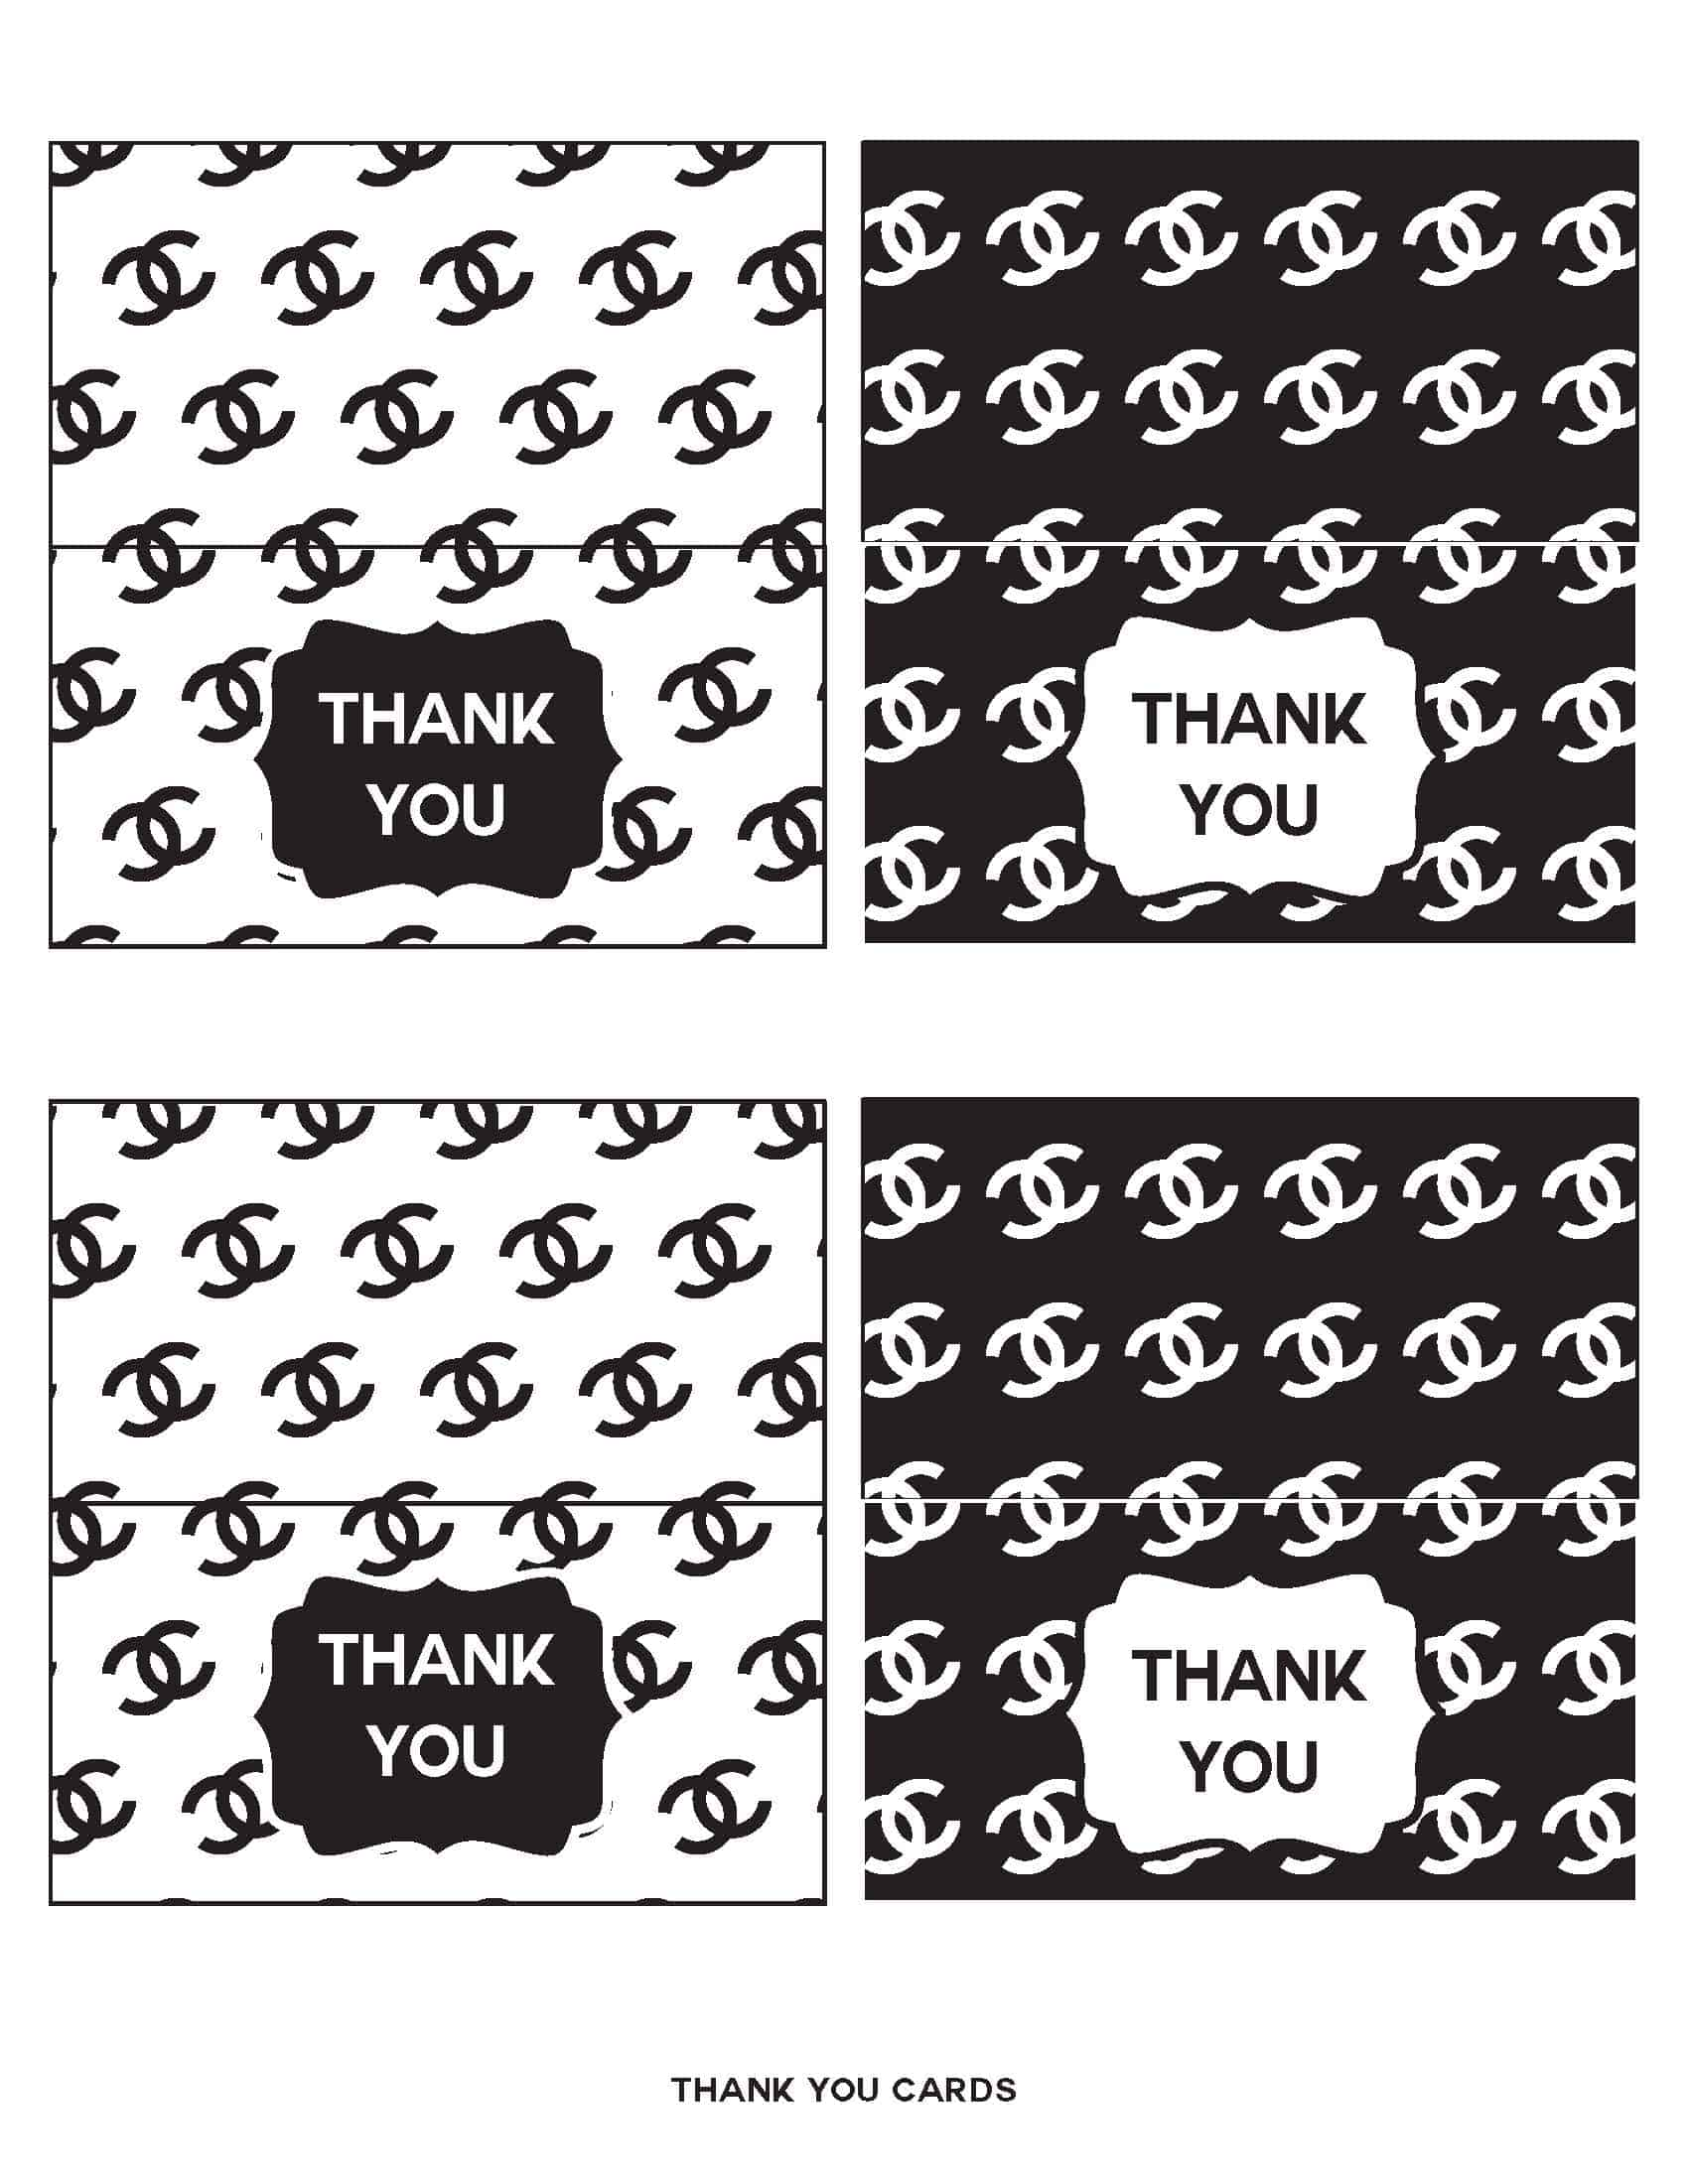 Thank You Cards_Page_2